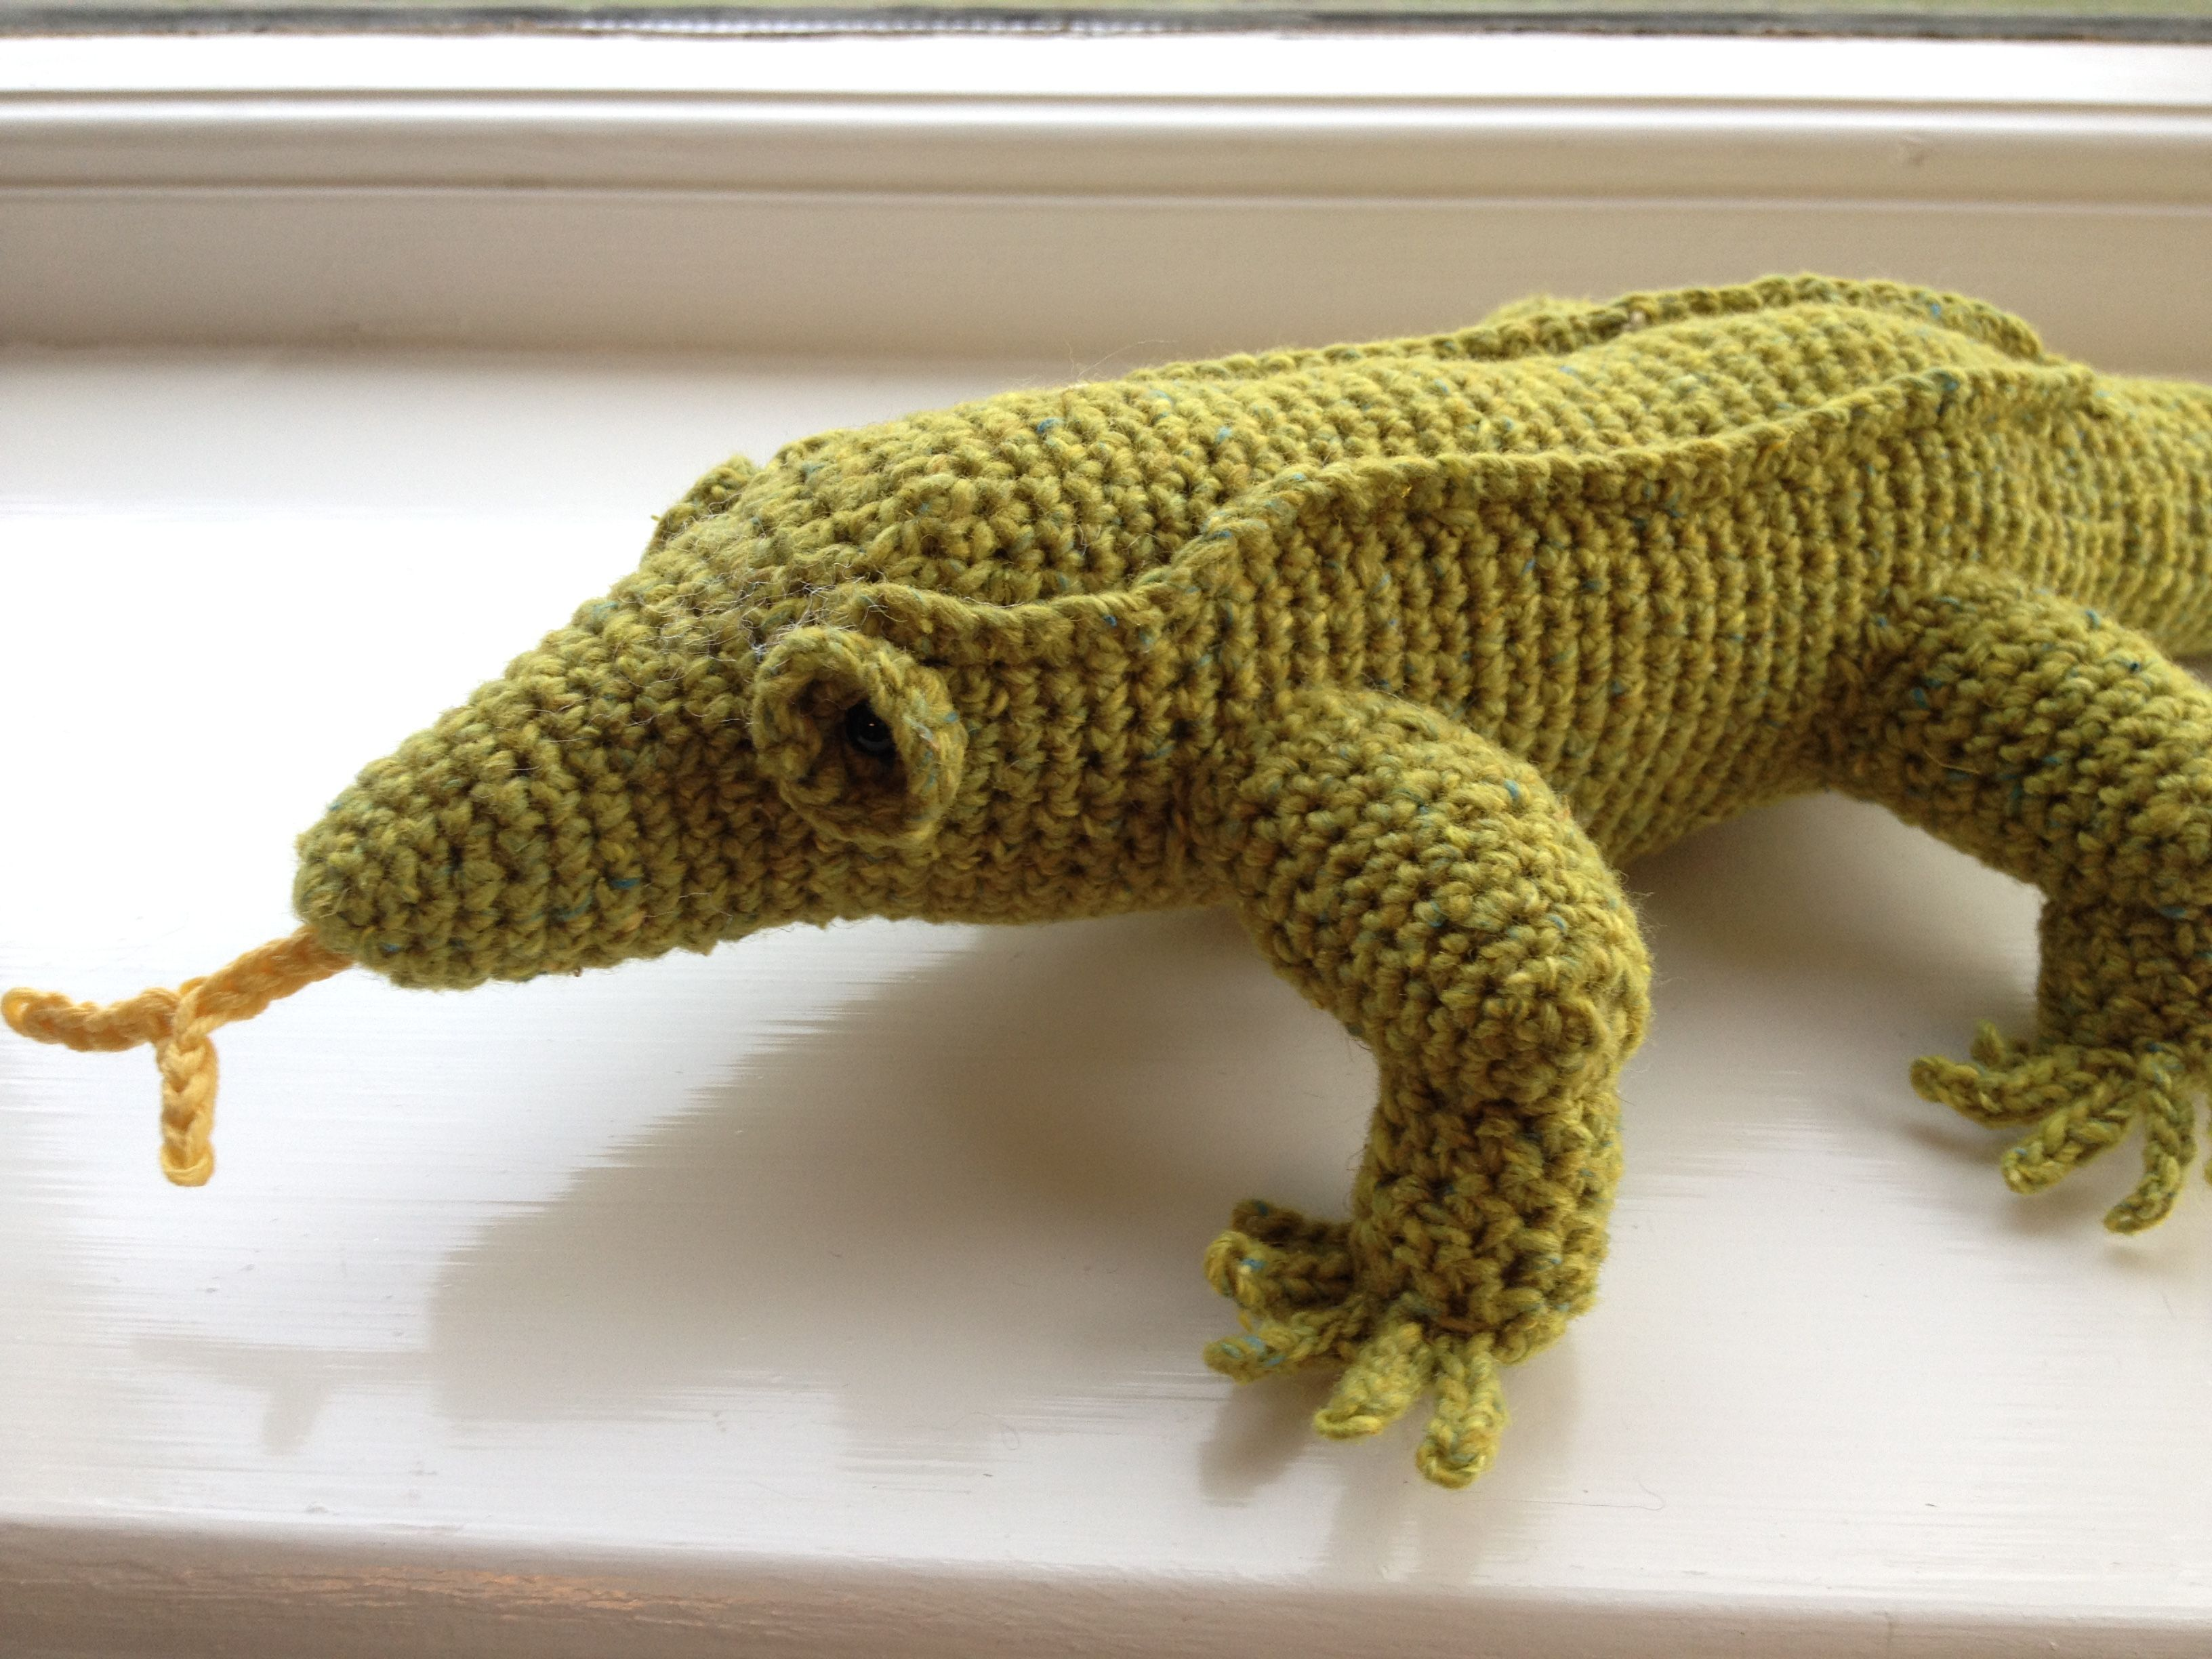 A great crested gecko and a cat geckos crested gecko and crochet a great crested gecko and a cat bankloansurffo Images